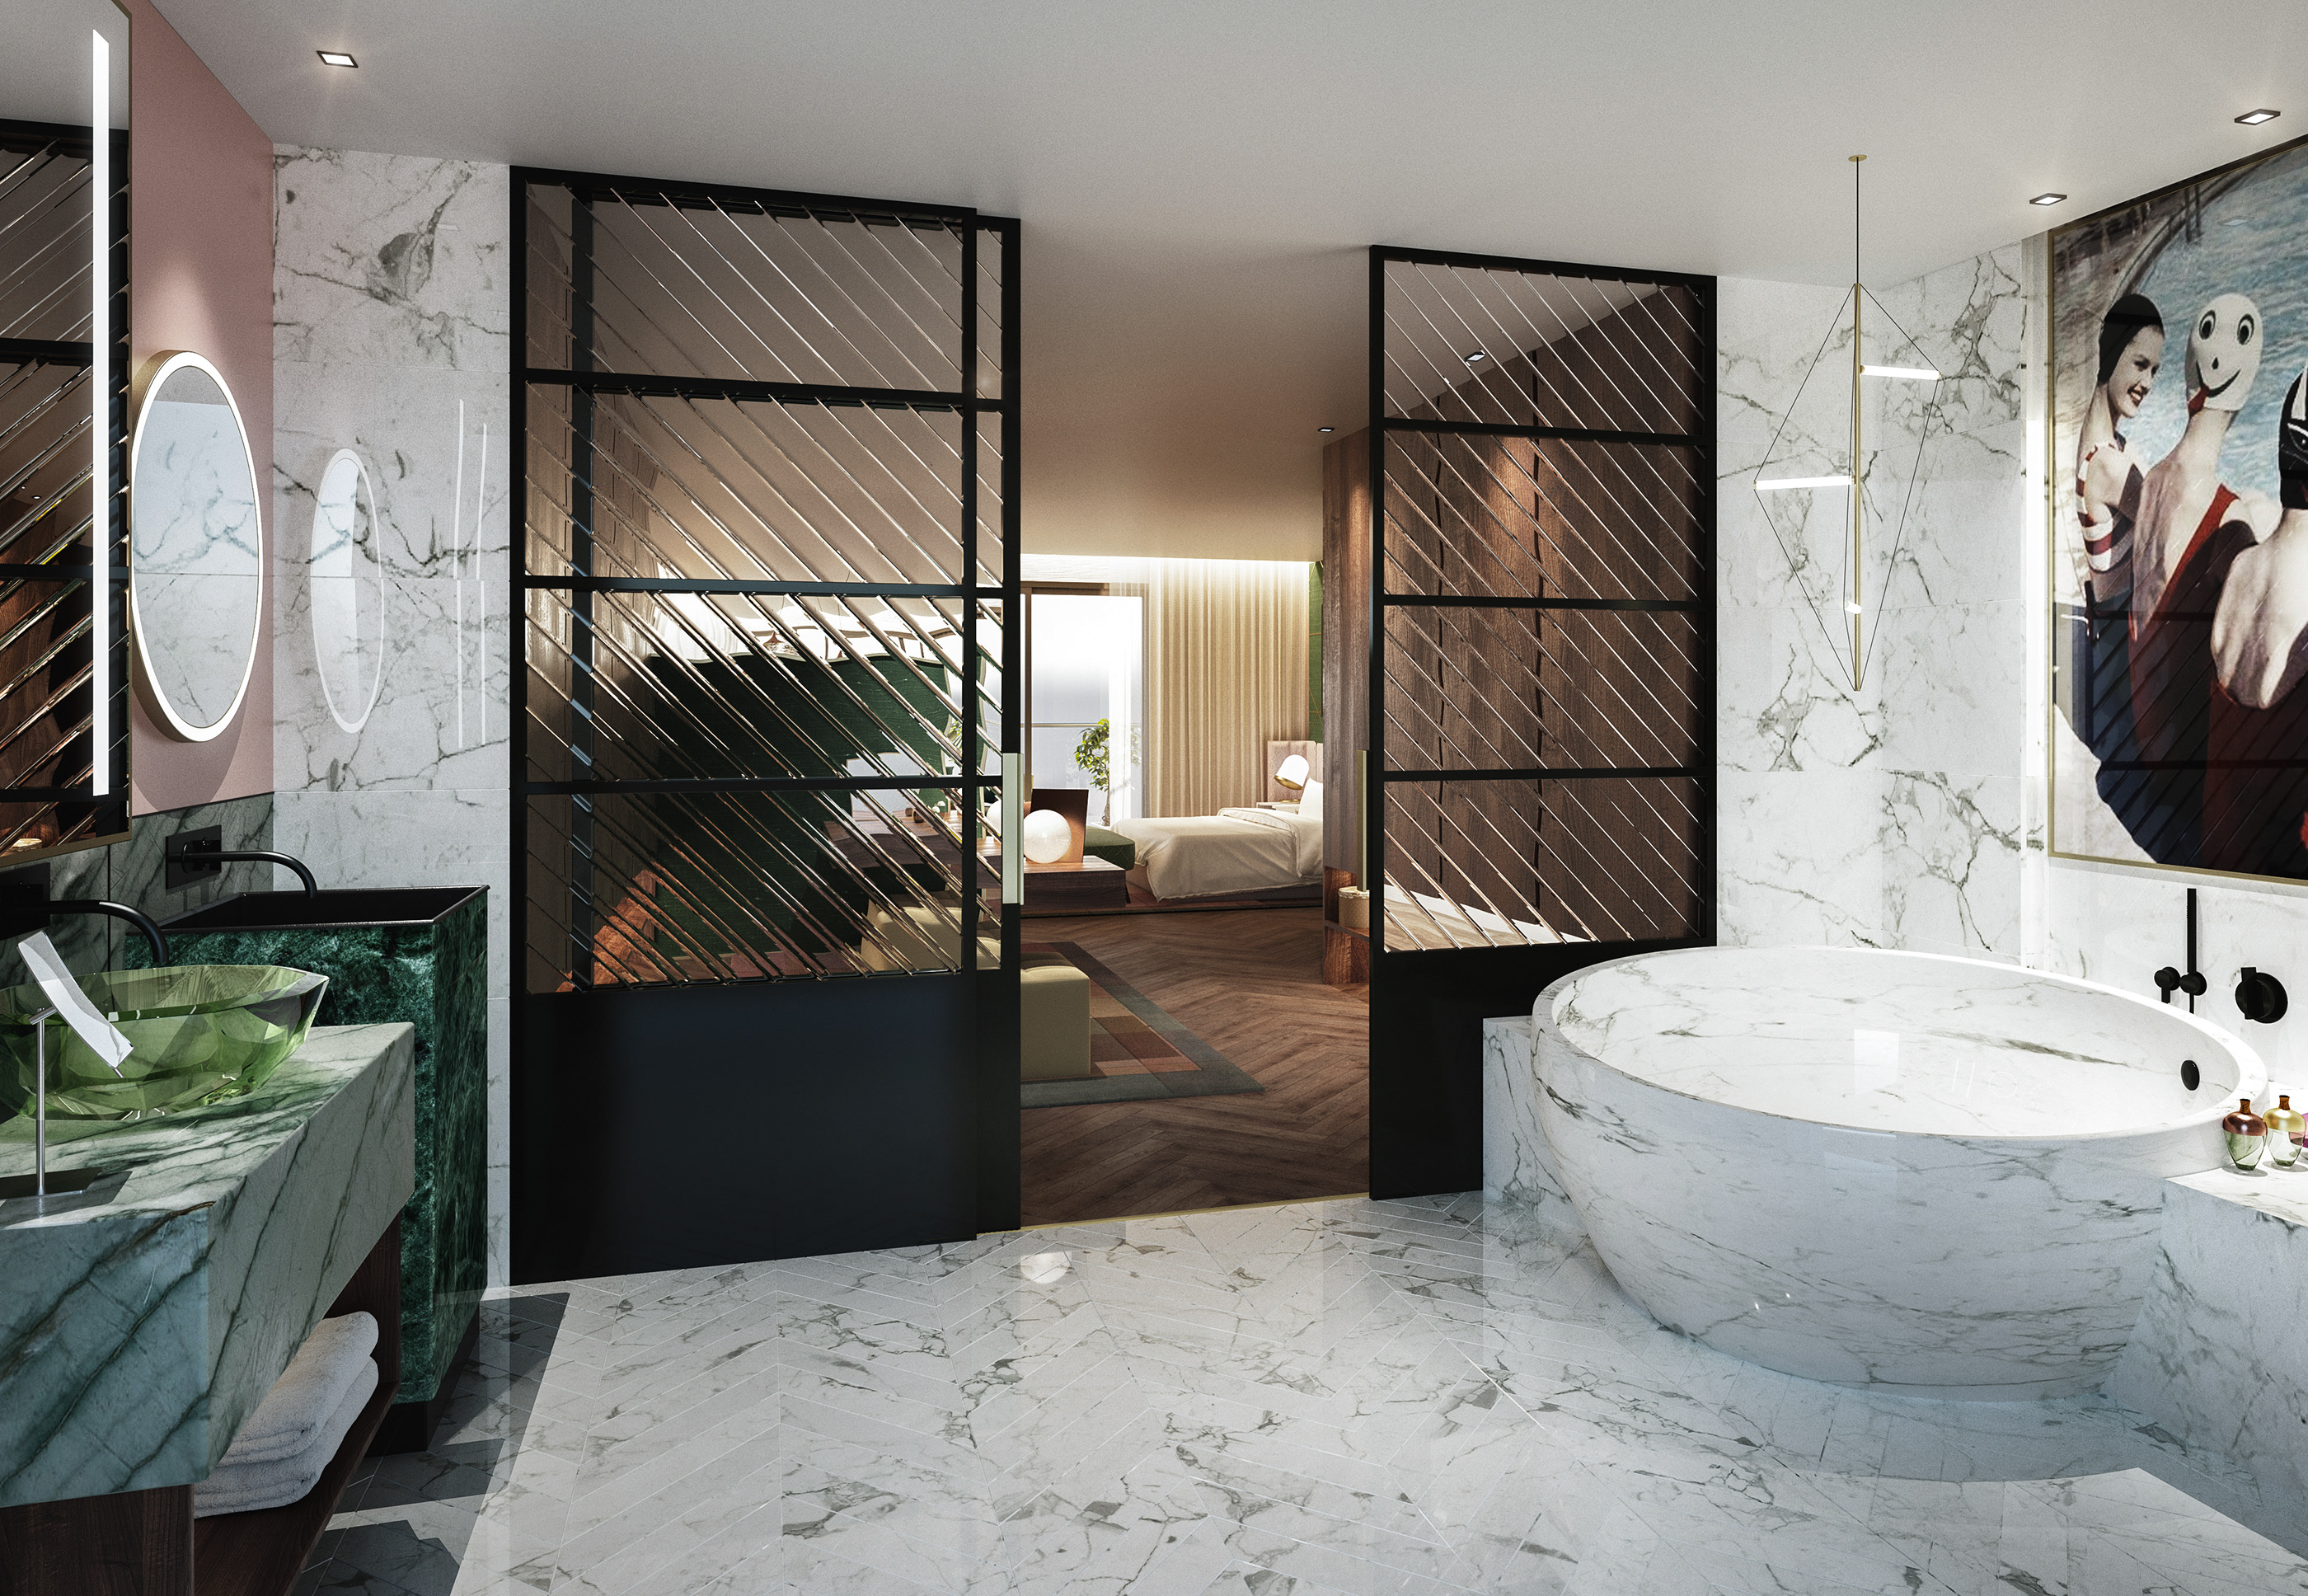 architectural visualization of hotel bathroom